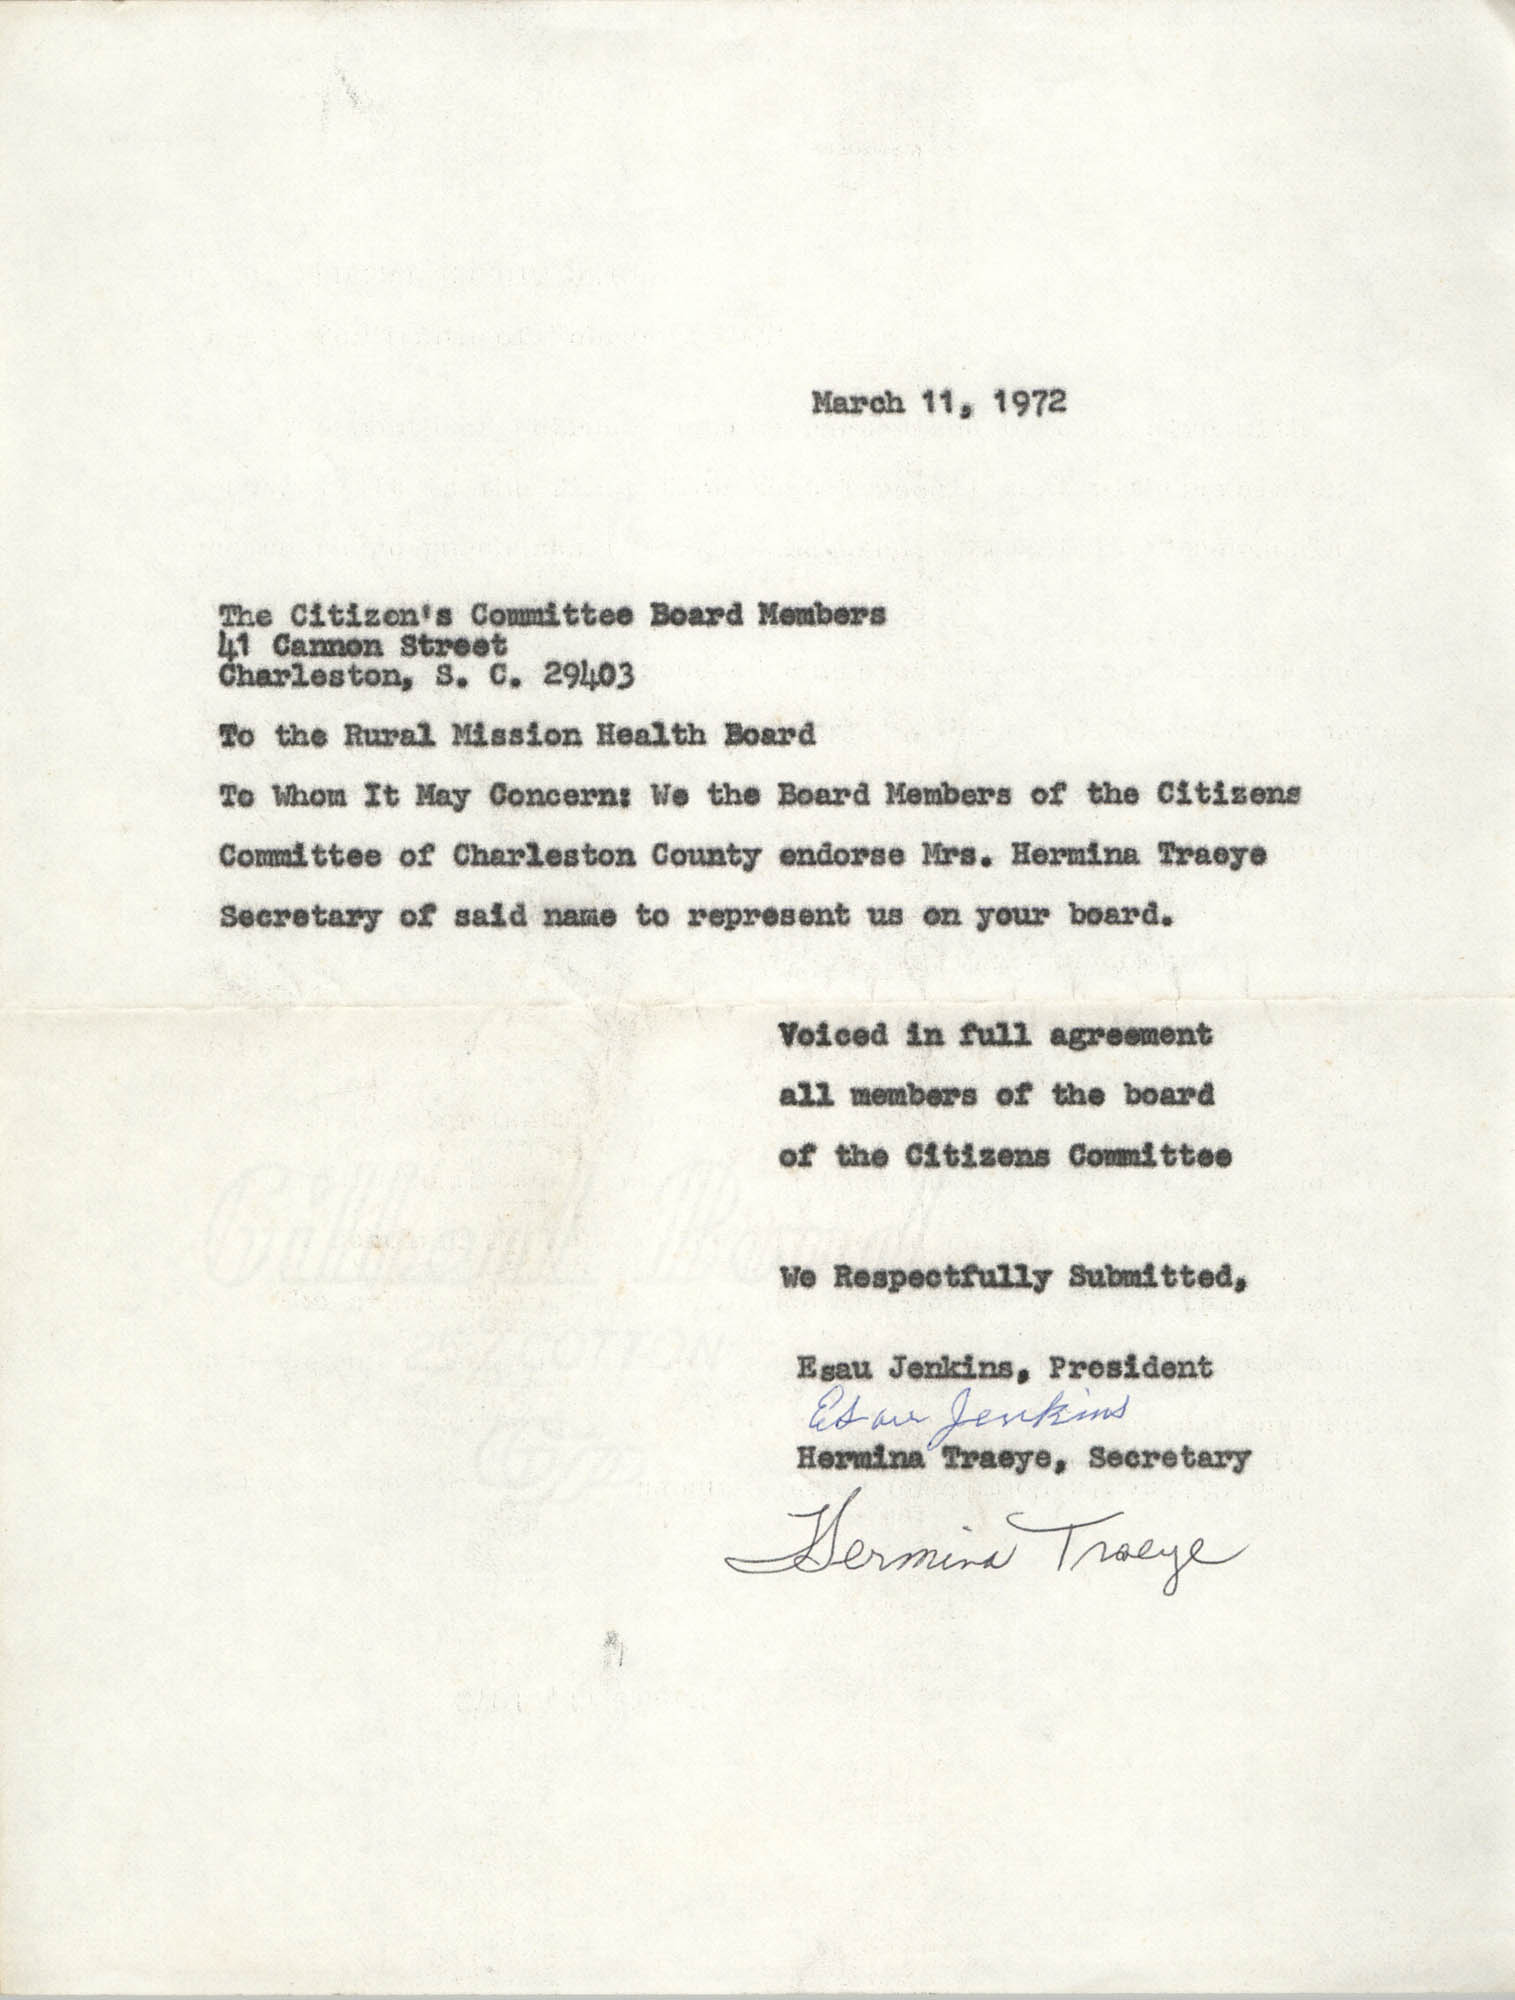 Letter from Esau Jenkins and Hermina Traeye to Rural Mission Health Board, March 11, 1972